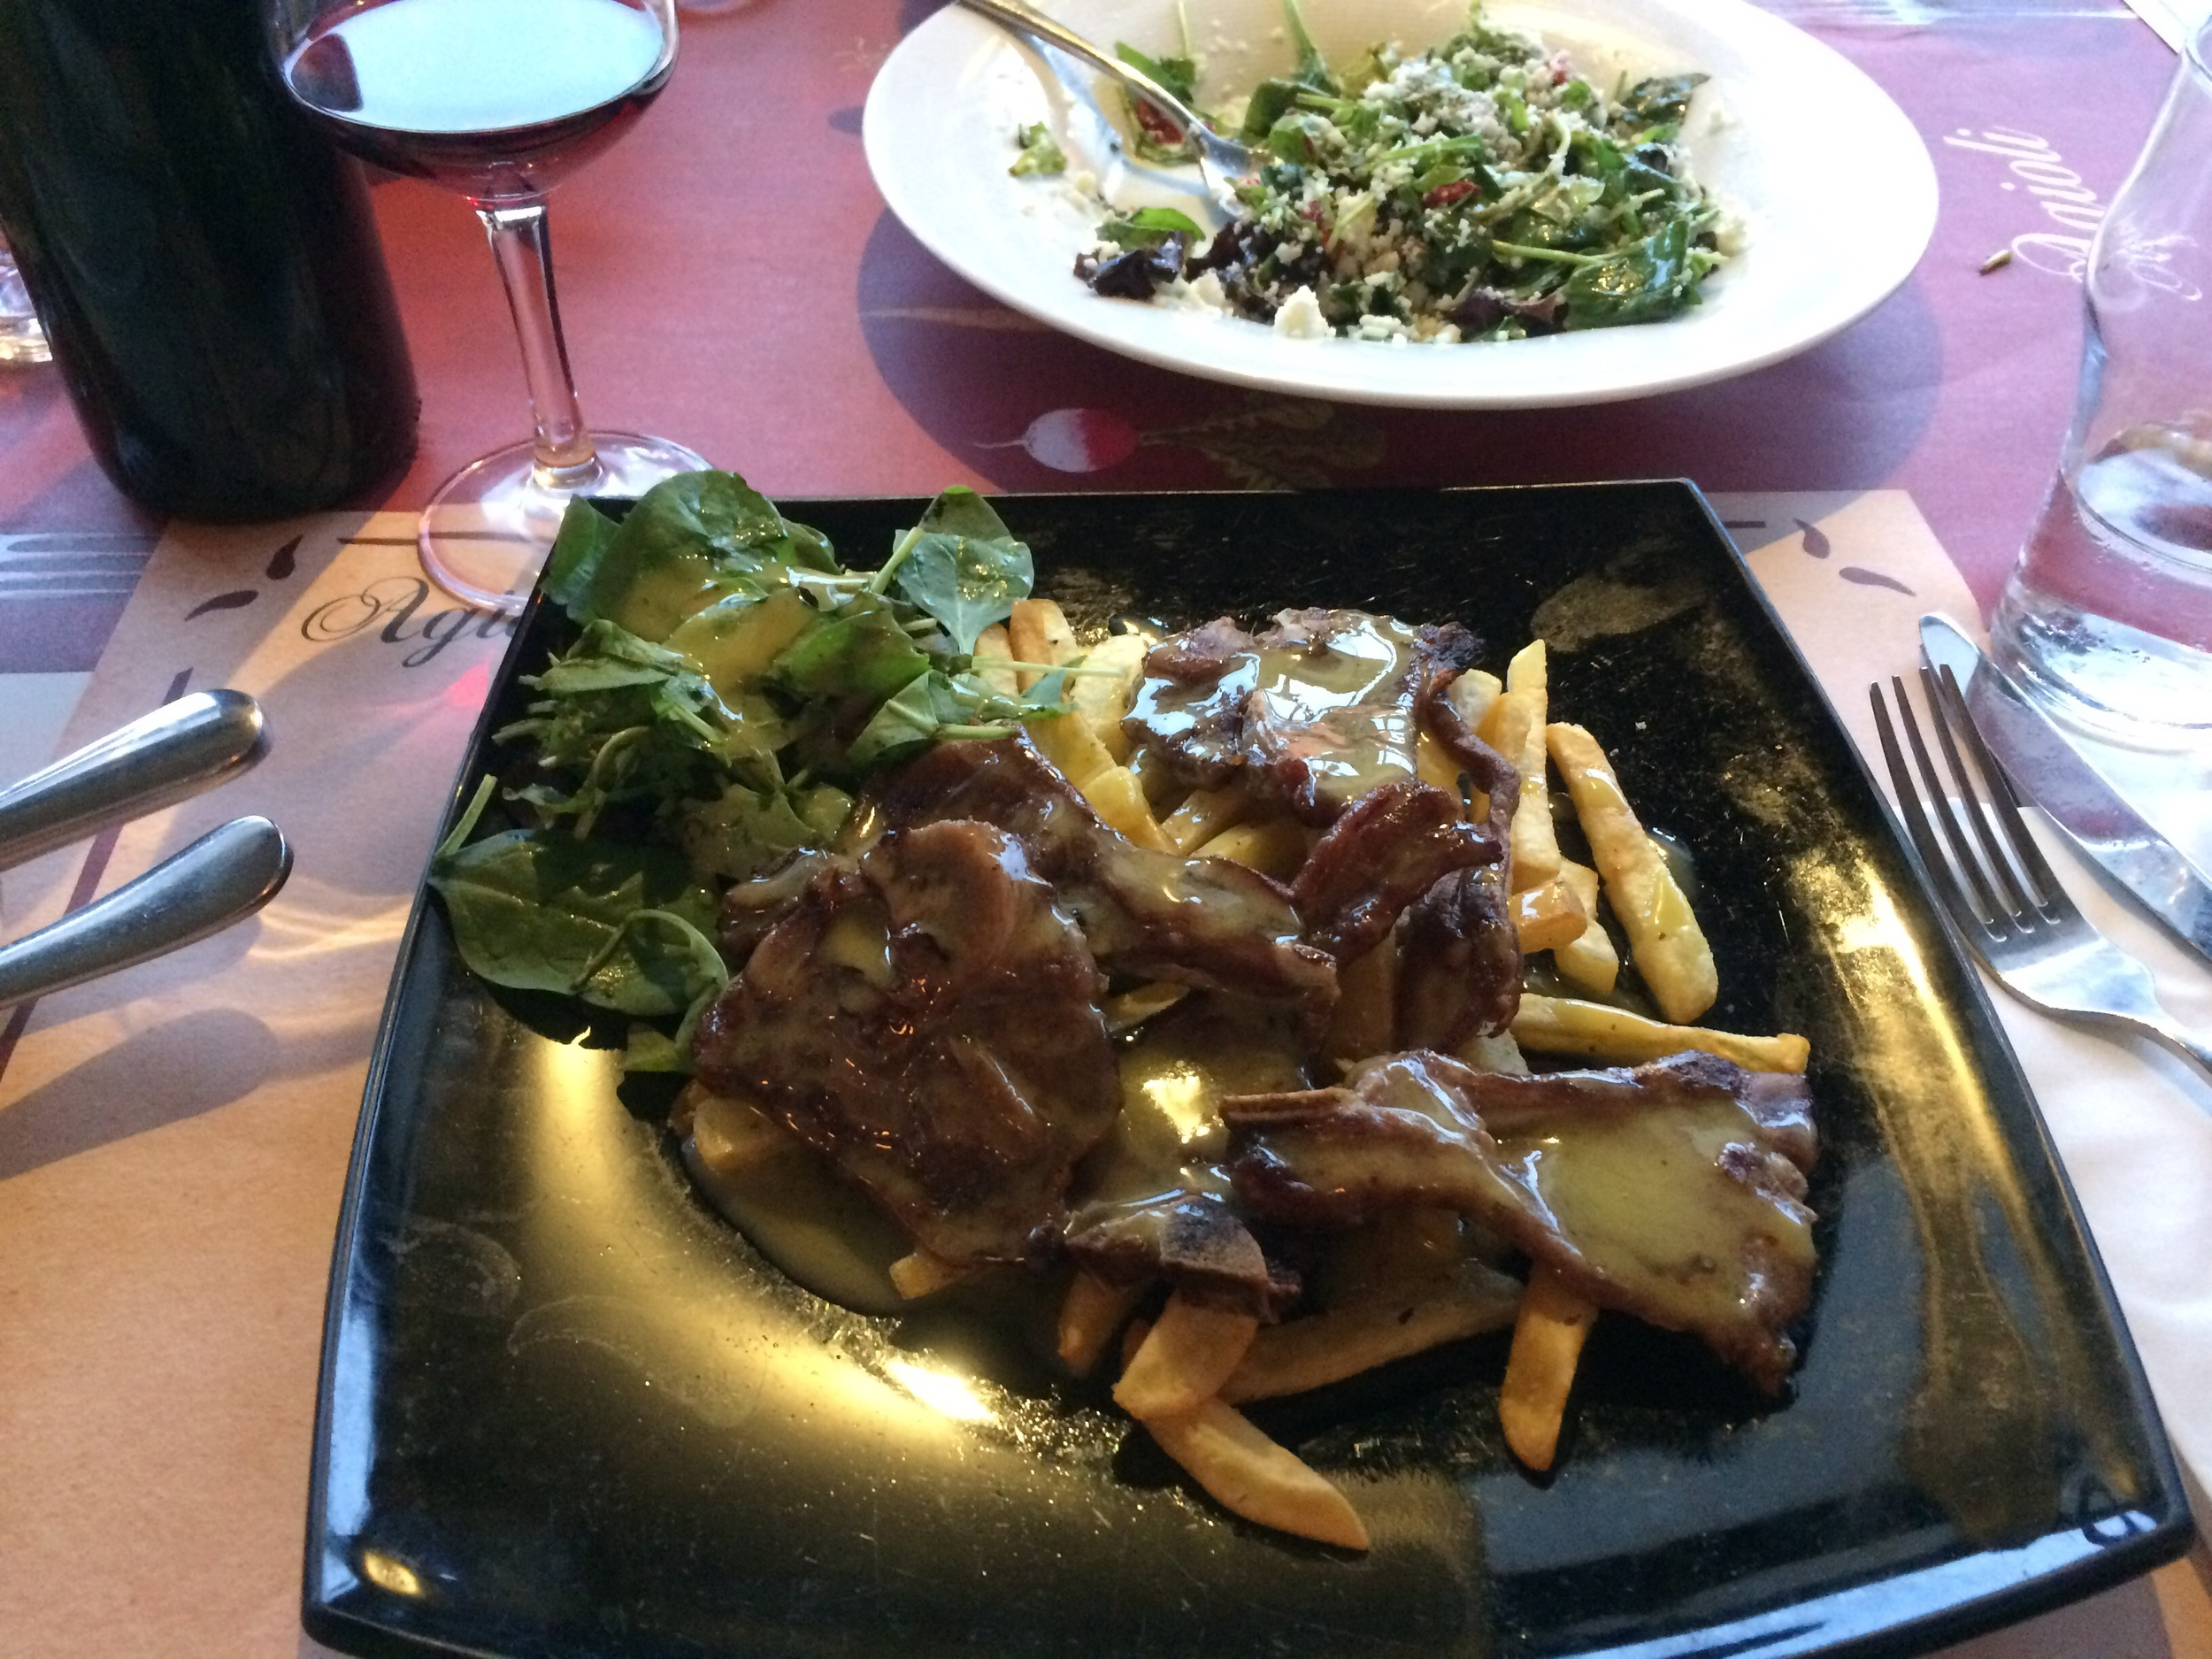 Lamb, of course over a bed of chips. My last supper.